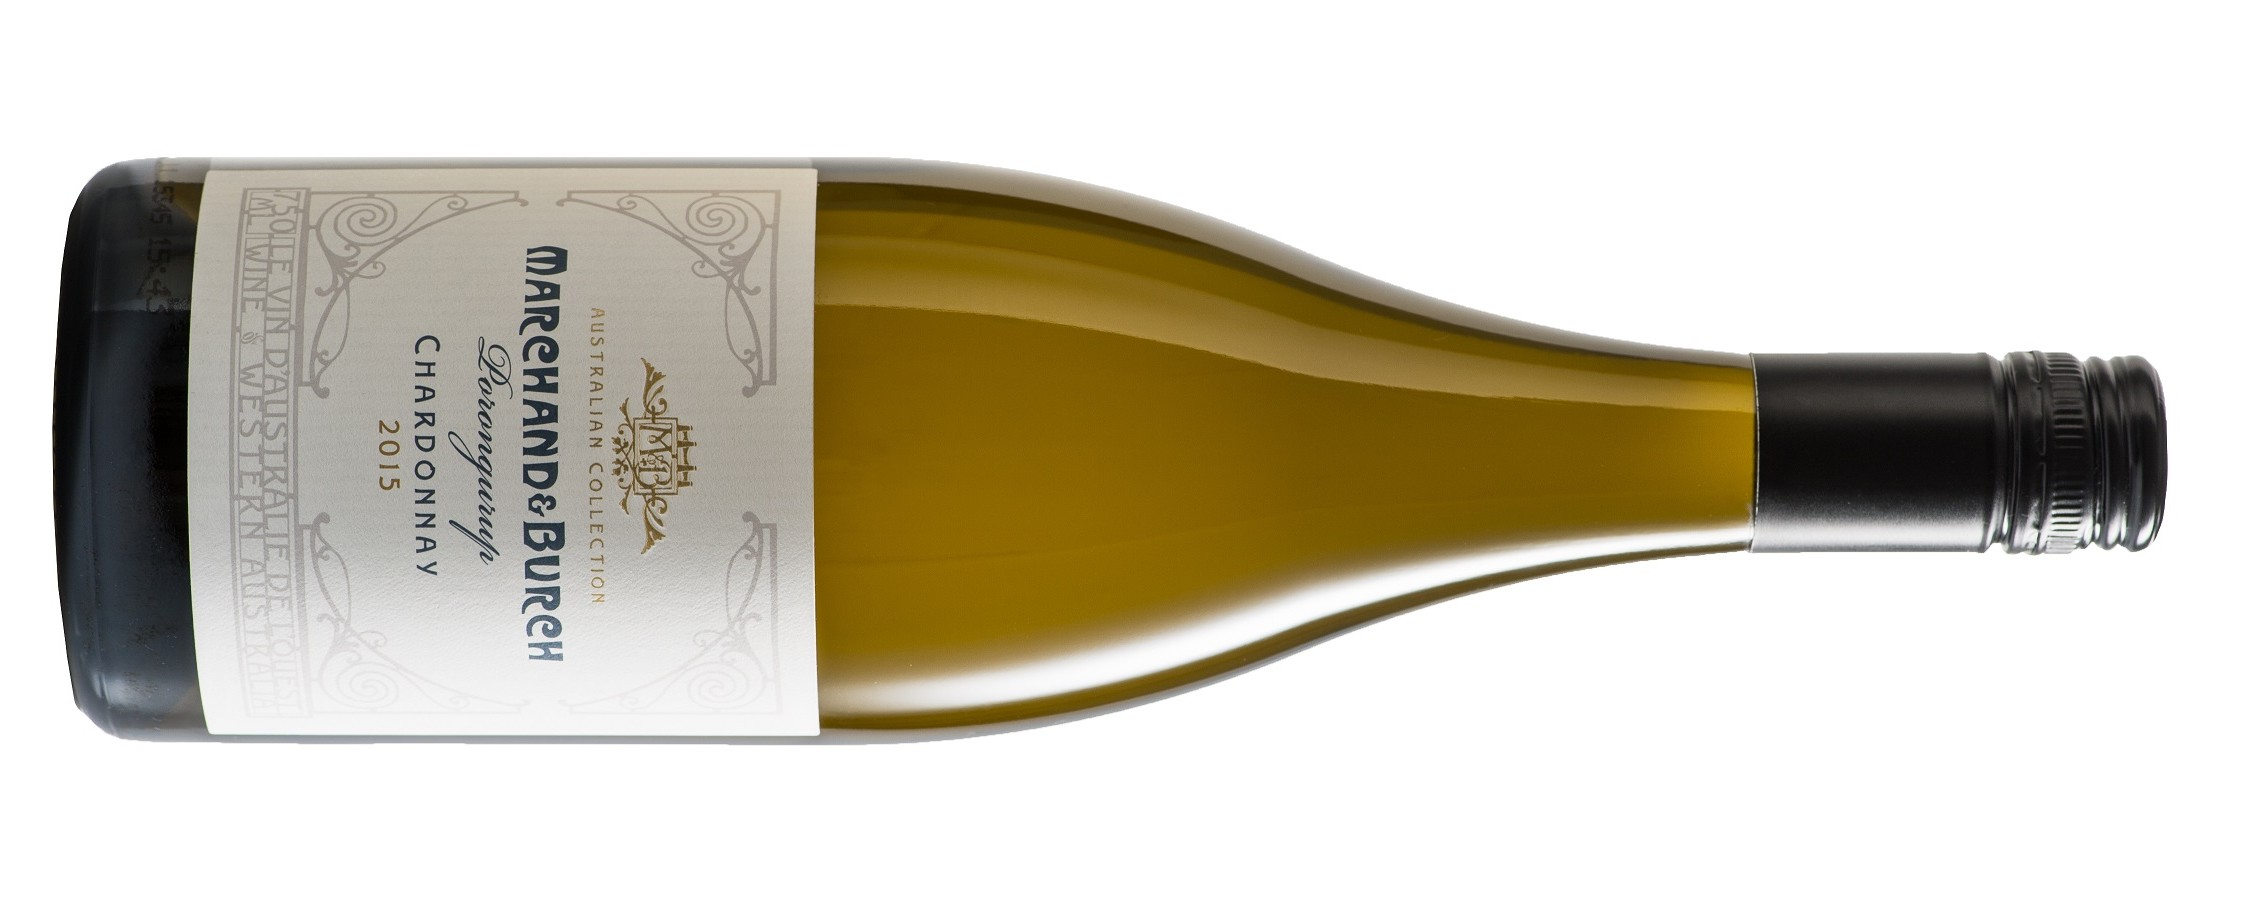 Marchand&Burch_2015_Porongurup-Chardonnay small